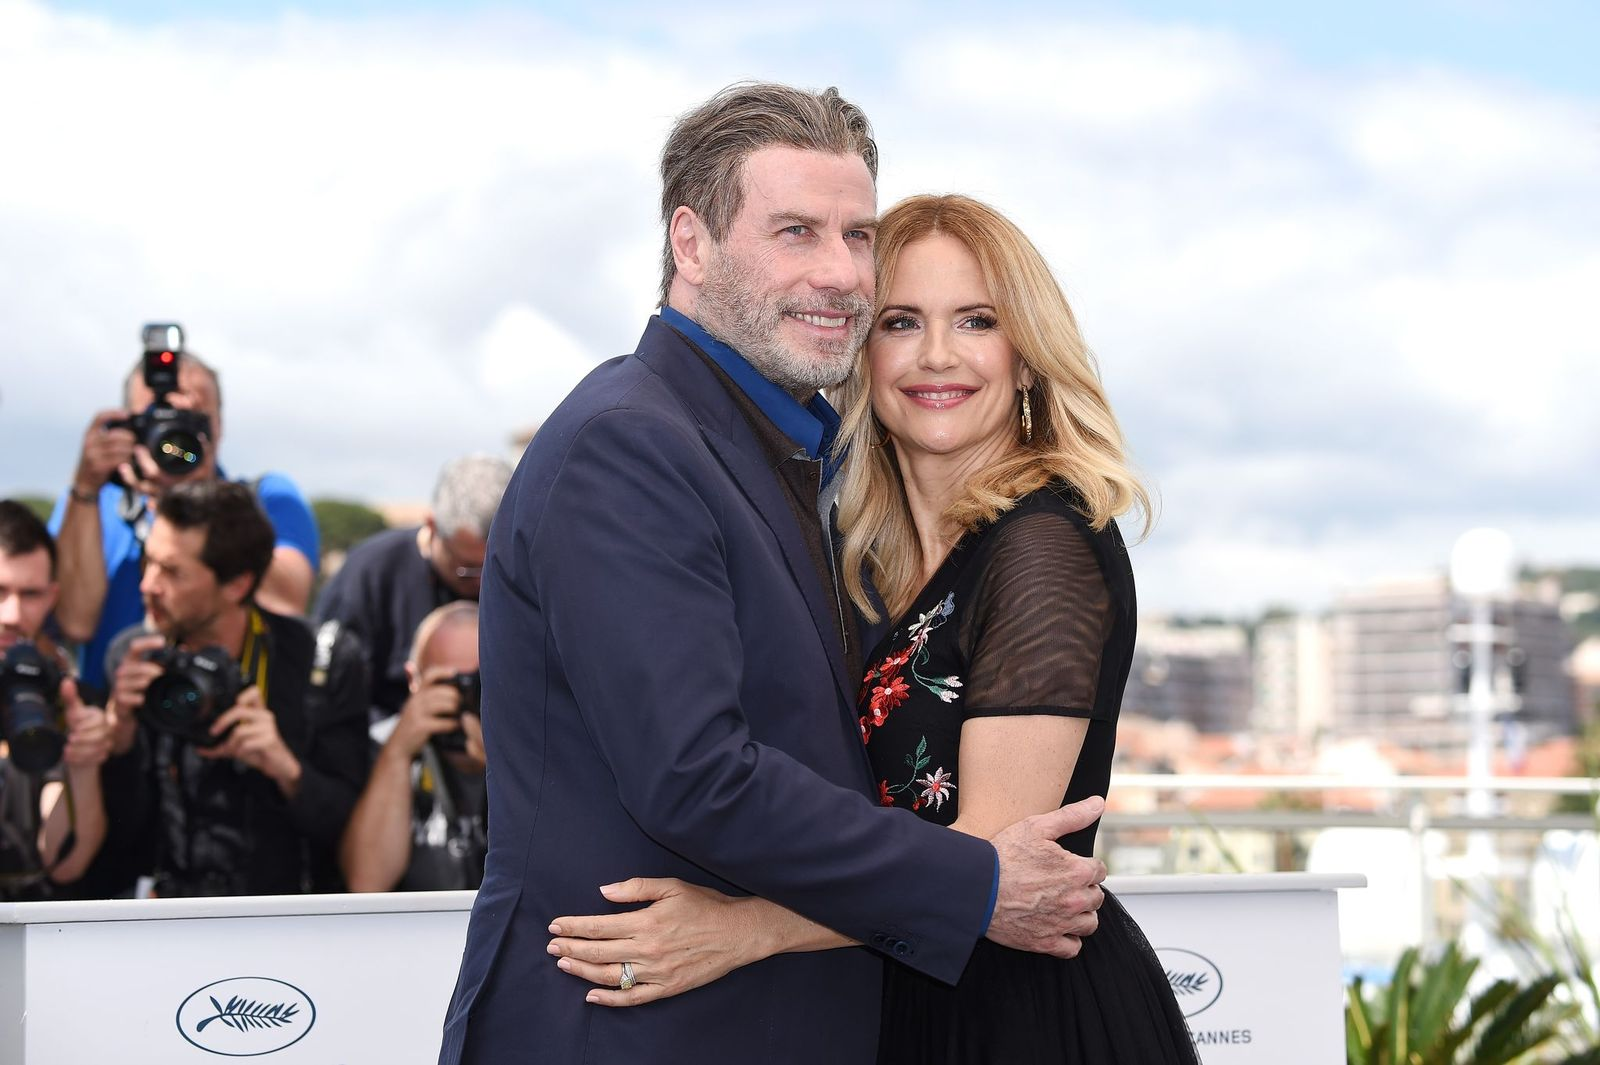 """Kelly Preston and John Travolta at the""""Rendezvous With John Travolta - Gotti"""" Photocall at the 71st annual Cannes Film Festival on May 15, 2018, in Cannes, France 